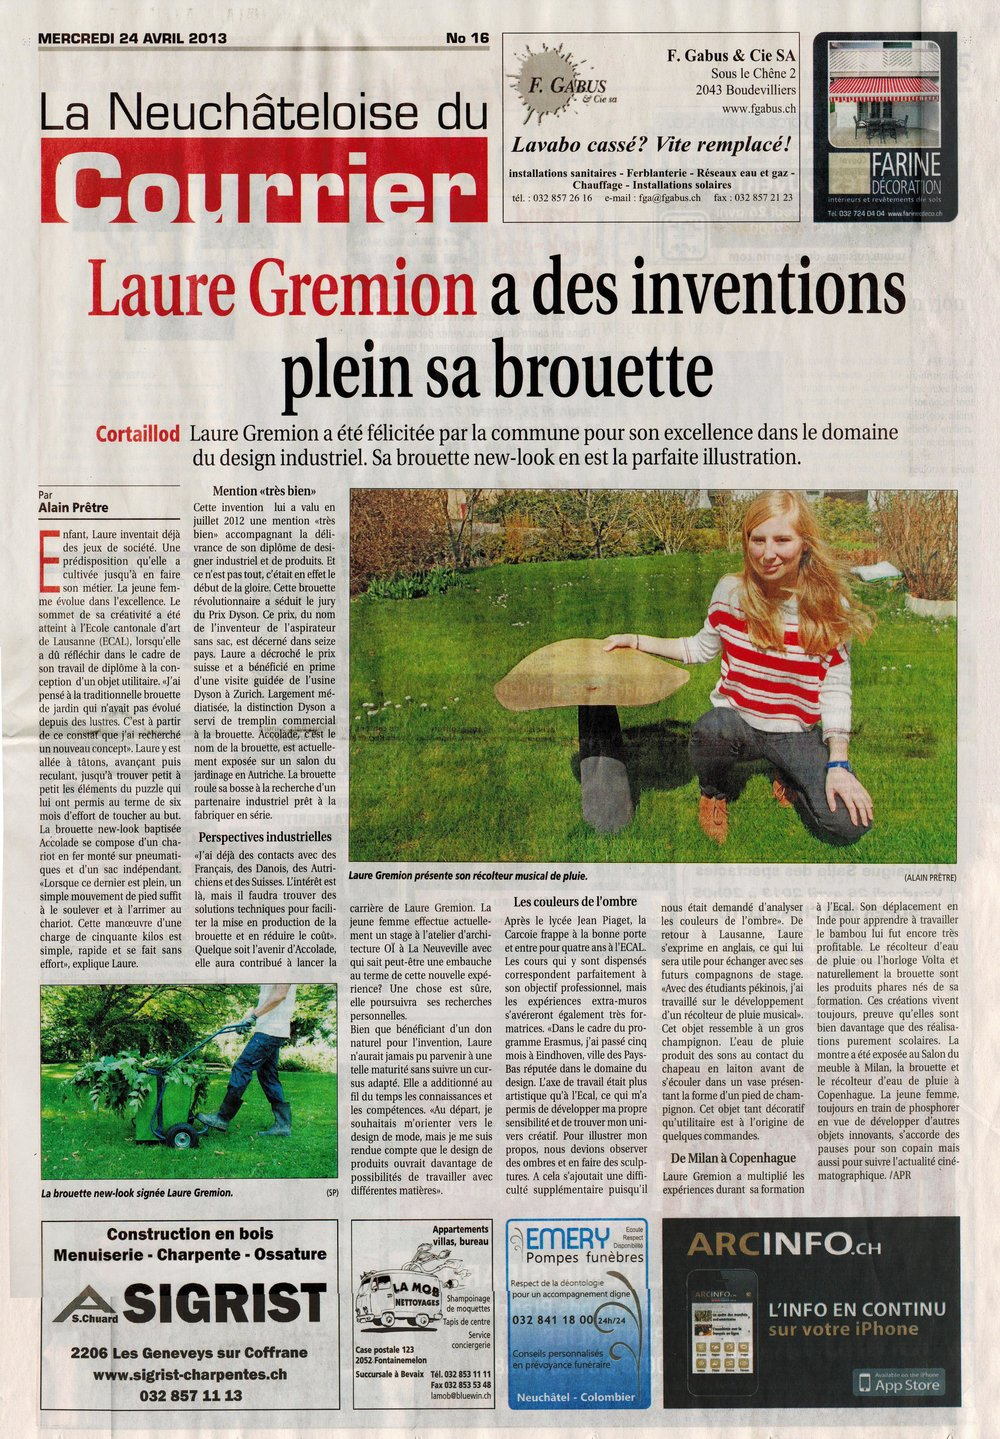 courrier neuchatelois 24.04.13.jpg